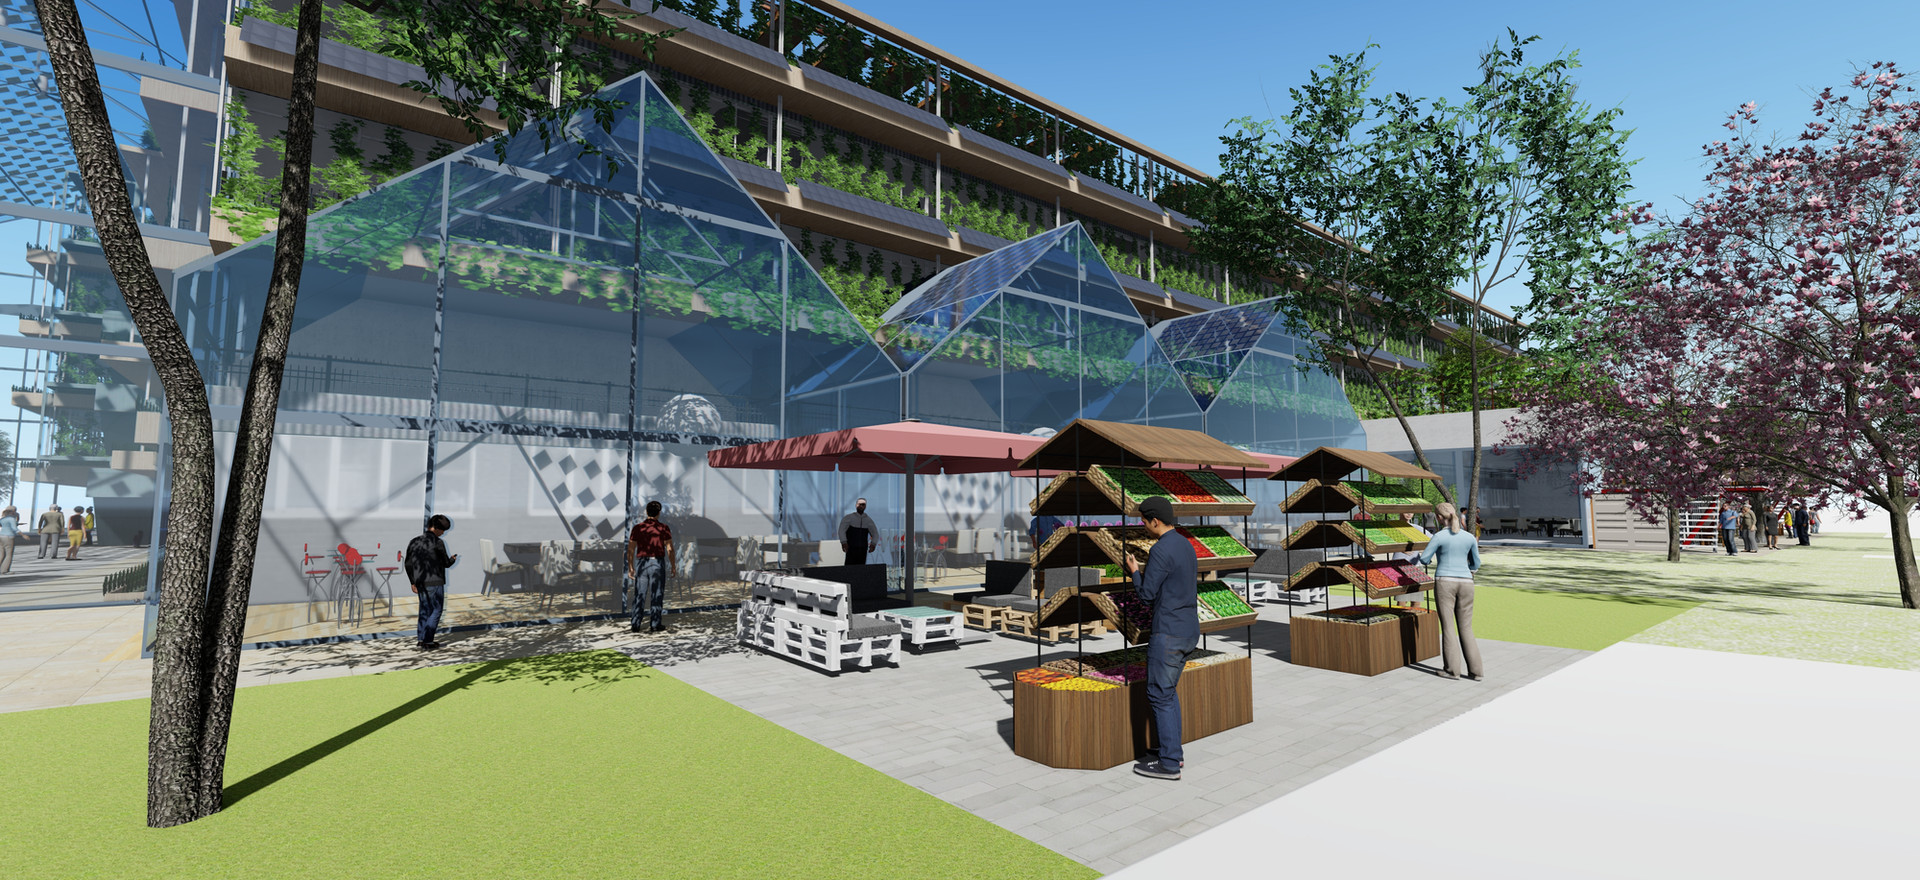 Future City Hubs help to diversify businesses in the food system through well-considered looped economy strategies.